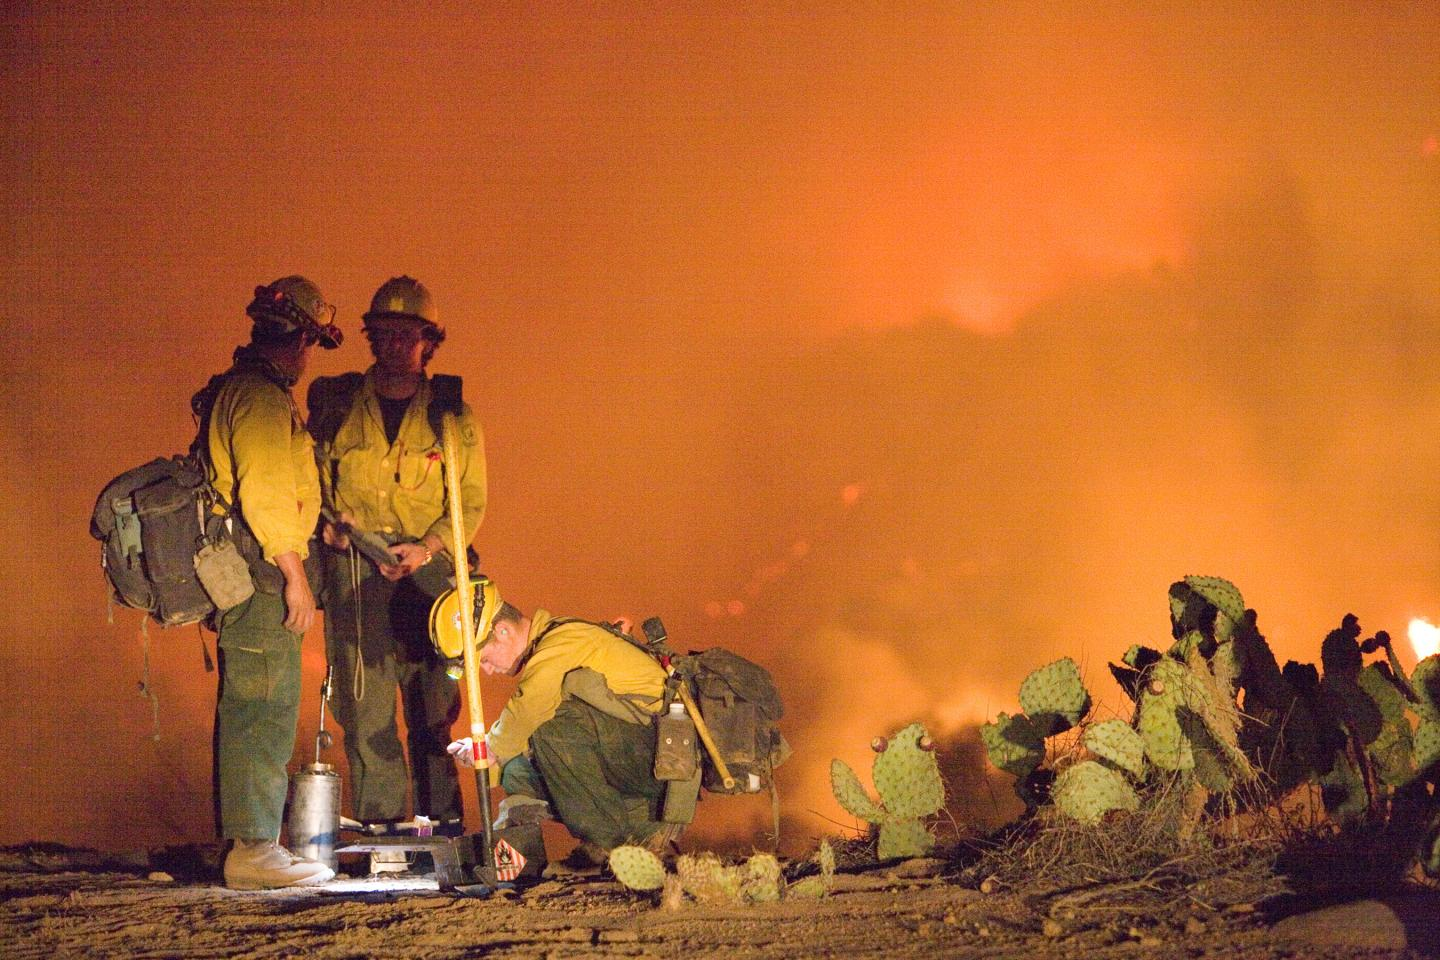 Firefighers at the Poomacha, Calif., Fire in 2007.